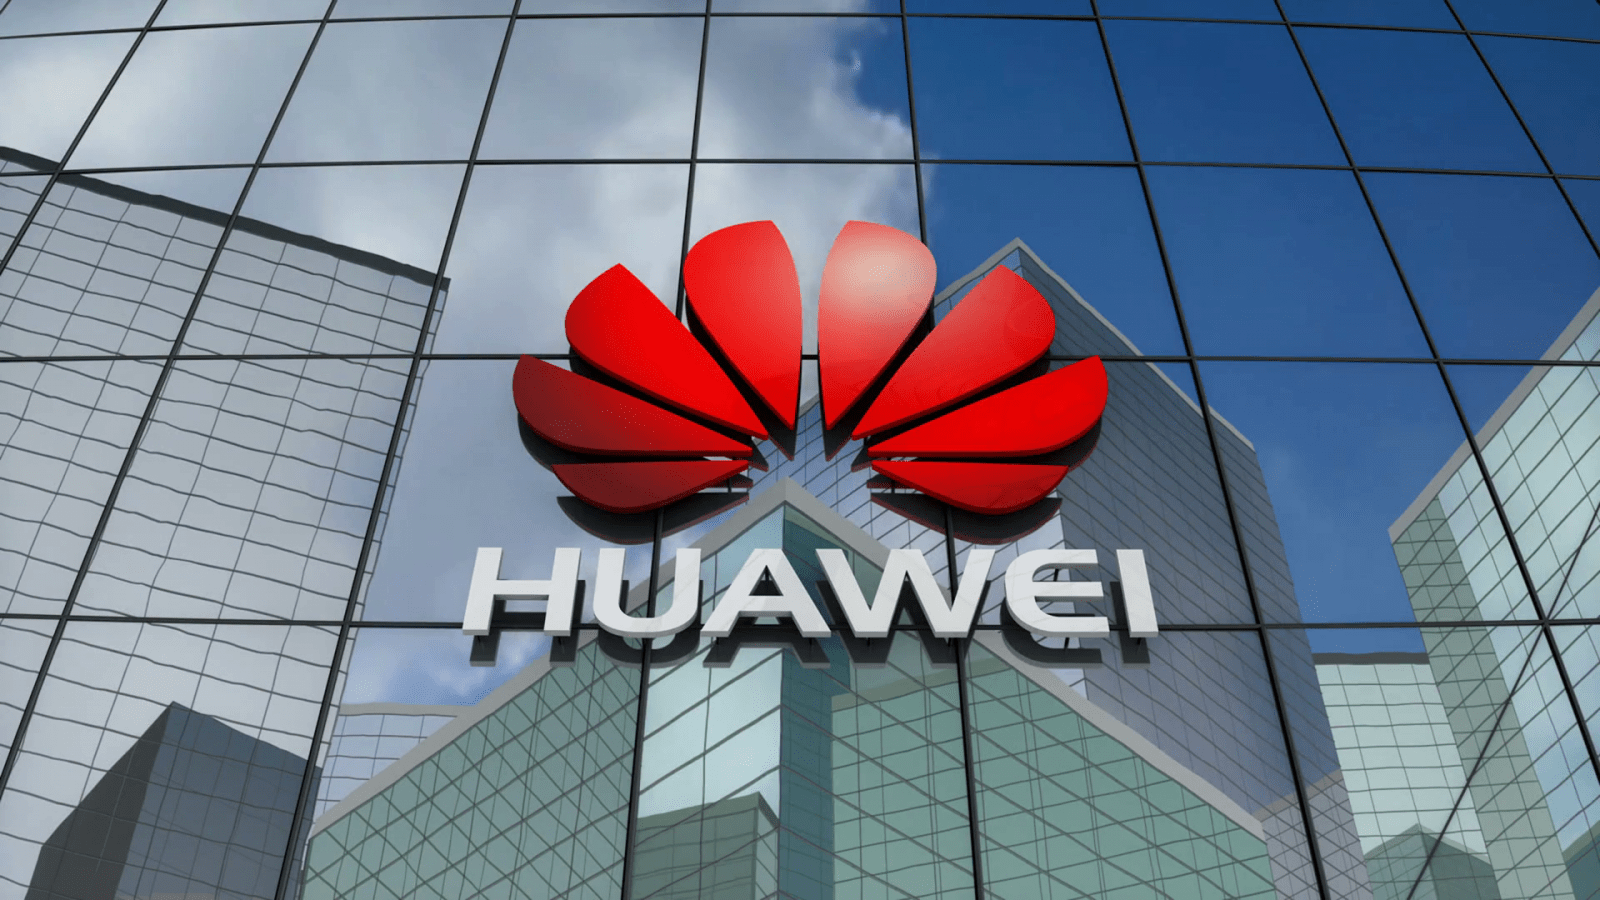 Chinese Tech Giant Huawei Sues U.S. Government